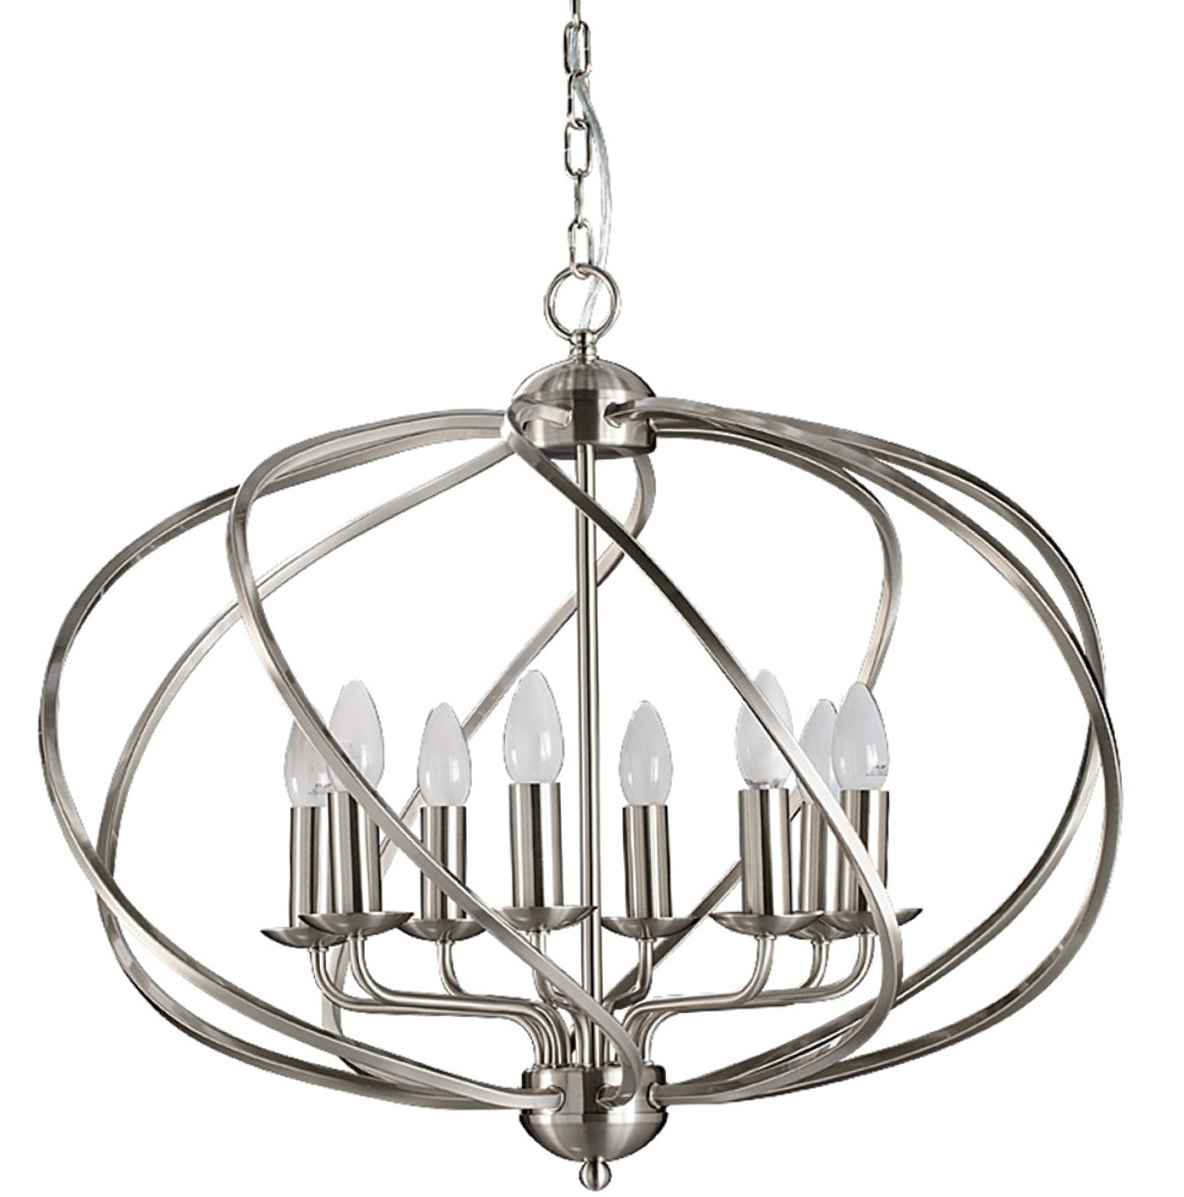 Polished Nickel Orb Chandelier